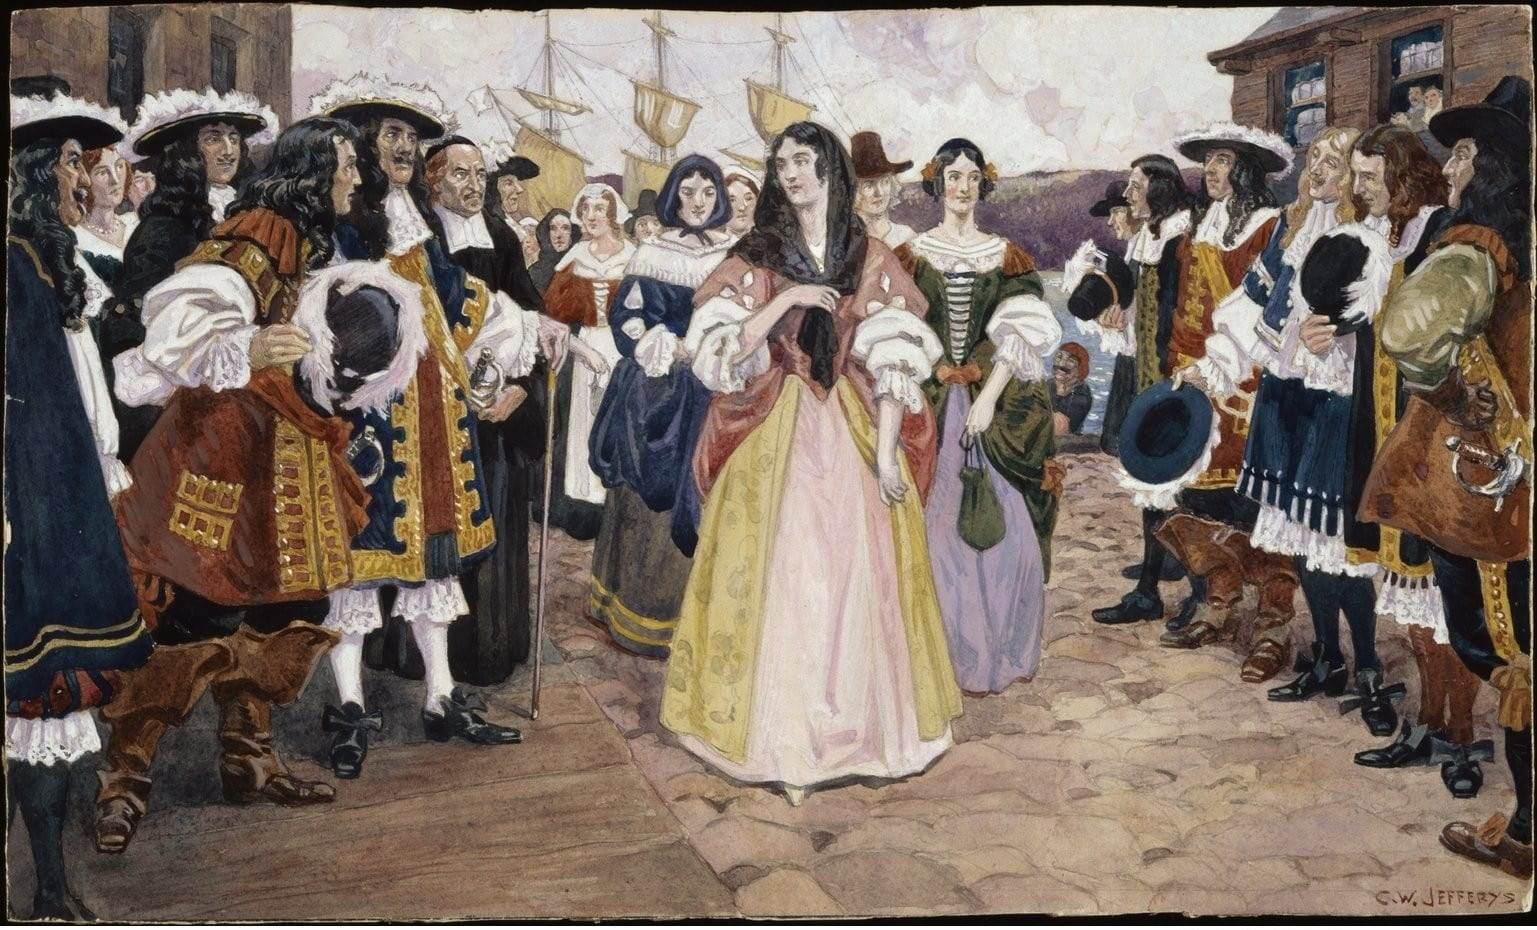 The Arrival of French women in 1666